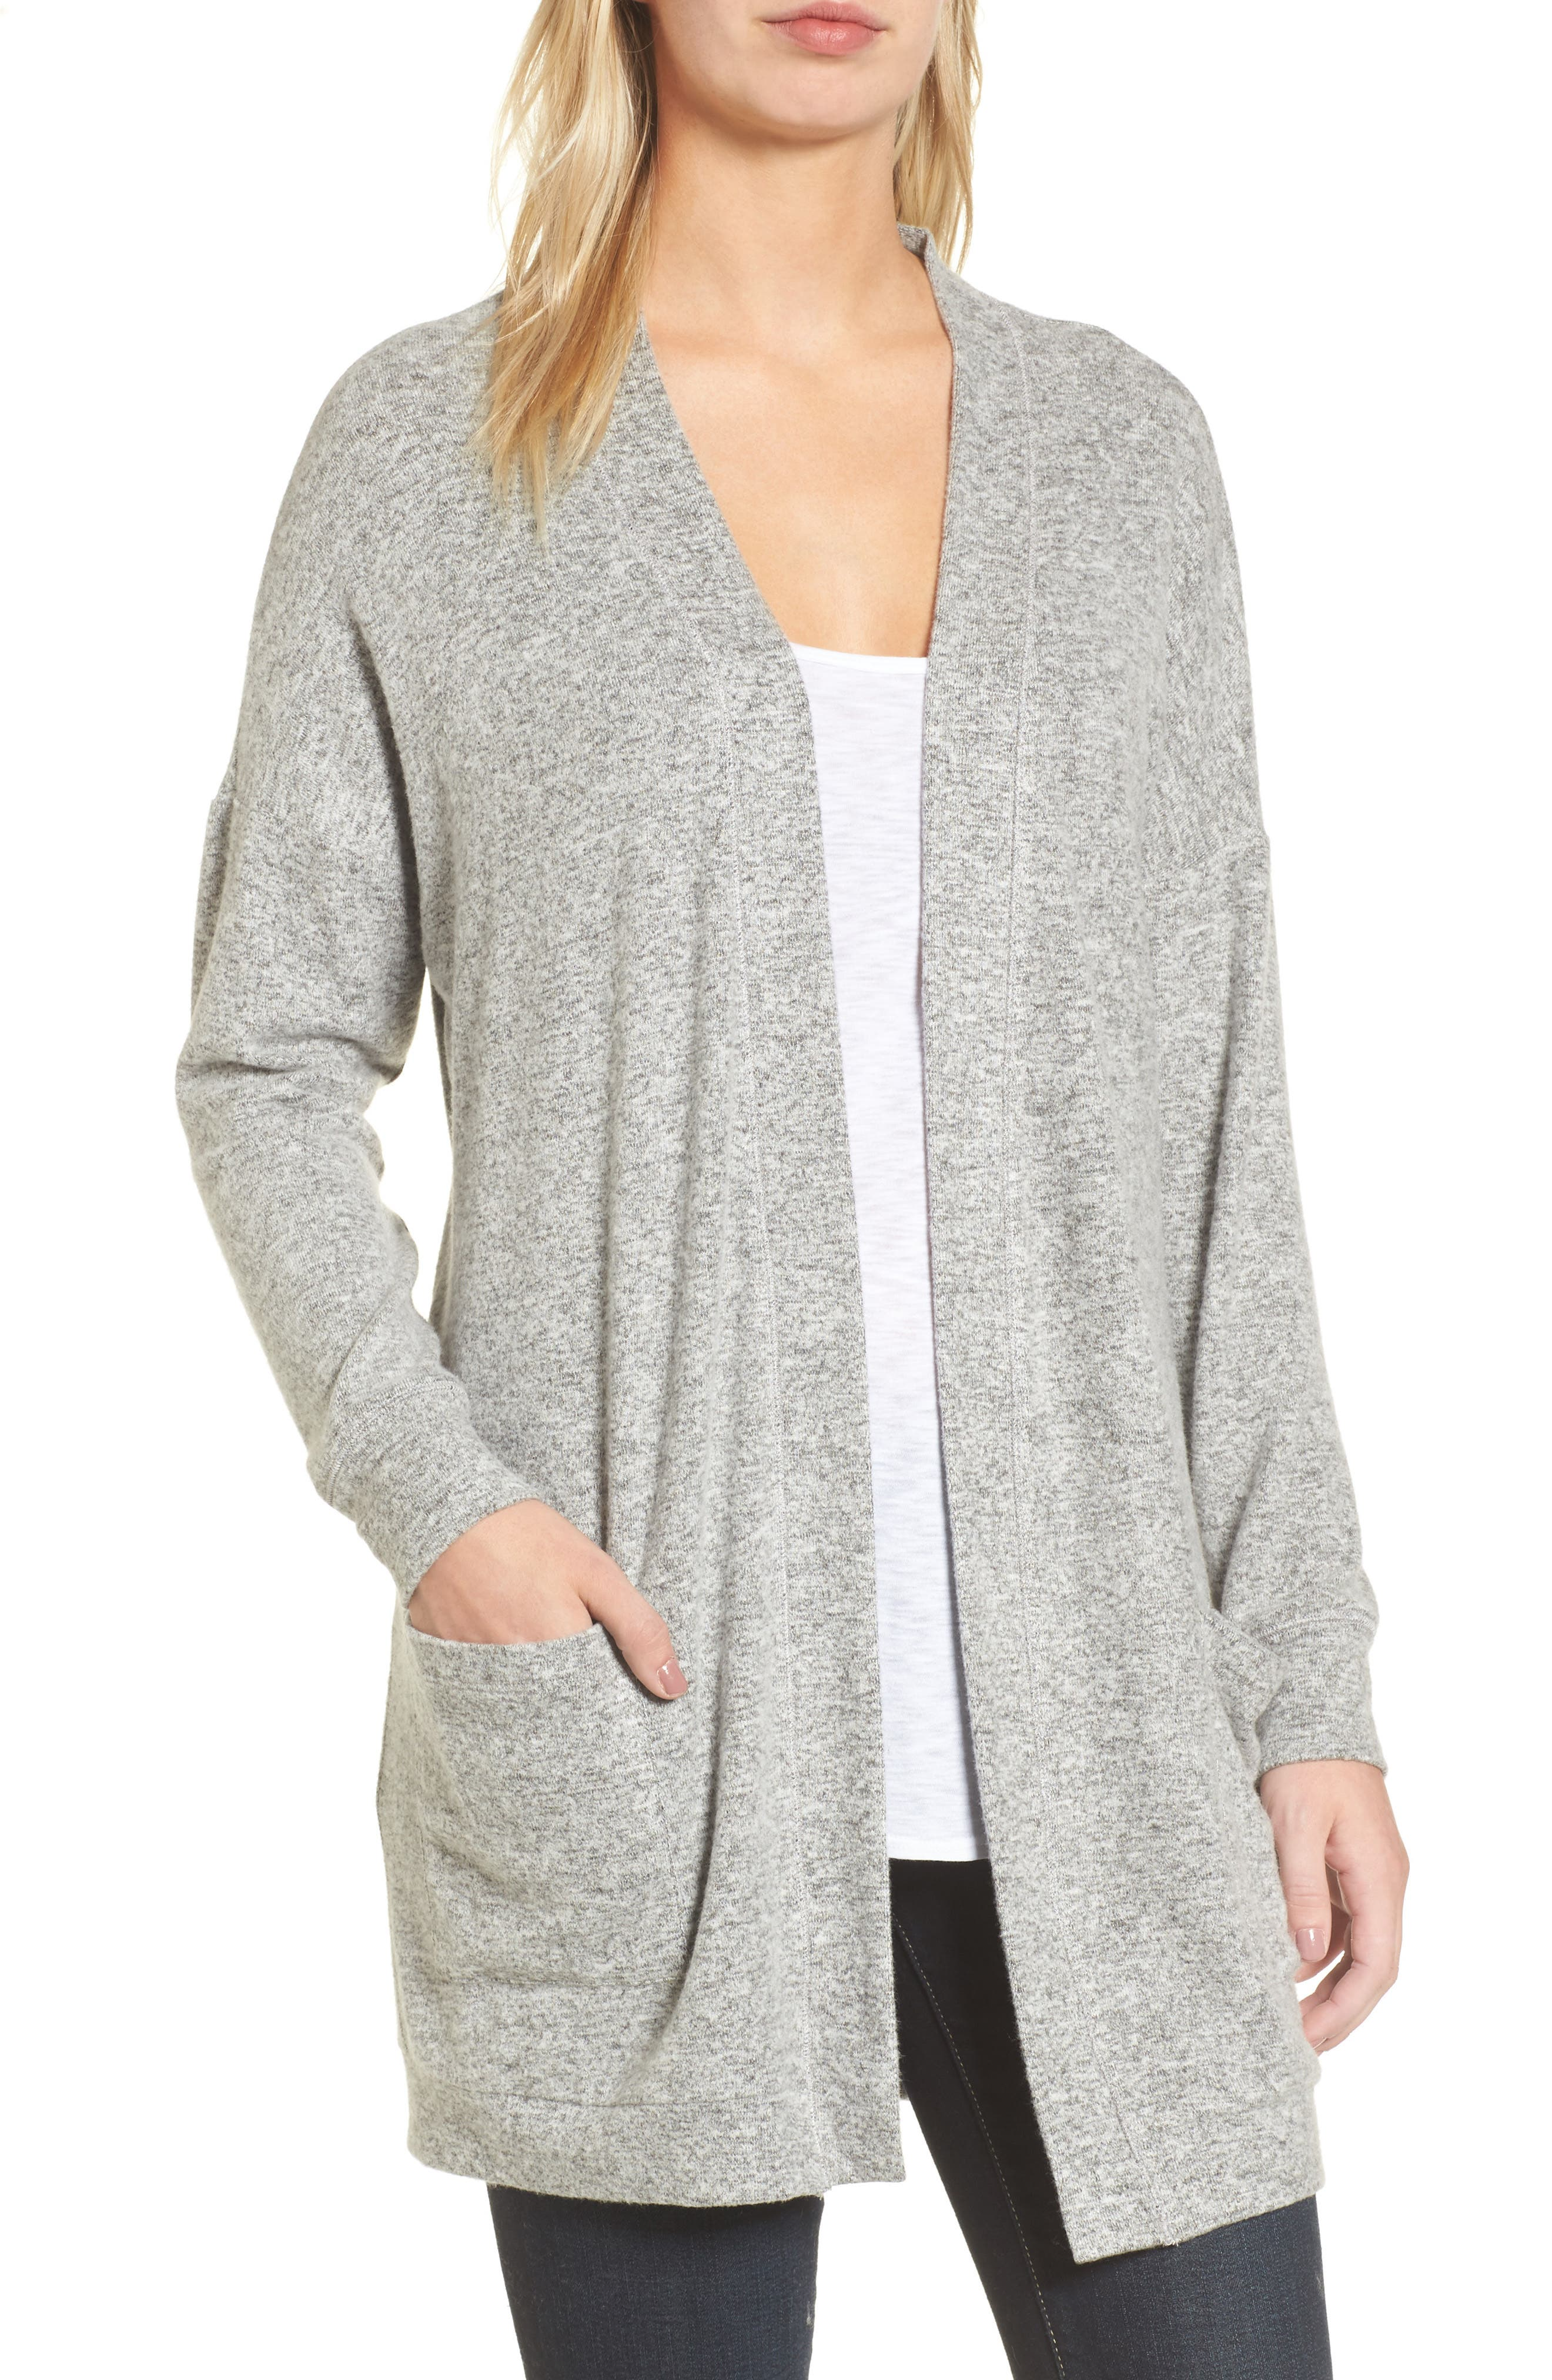 Rib Knit Cardigan,                             Main thumbnail 1, color,                             LIGHT HEATHER GREY